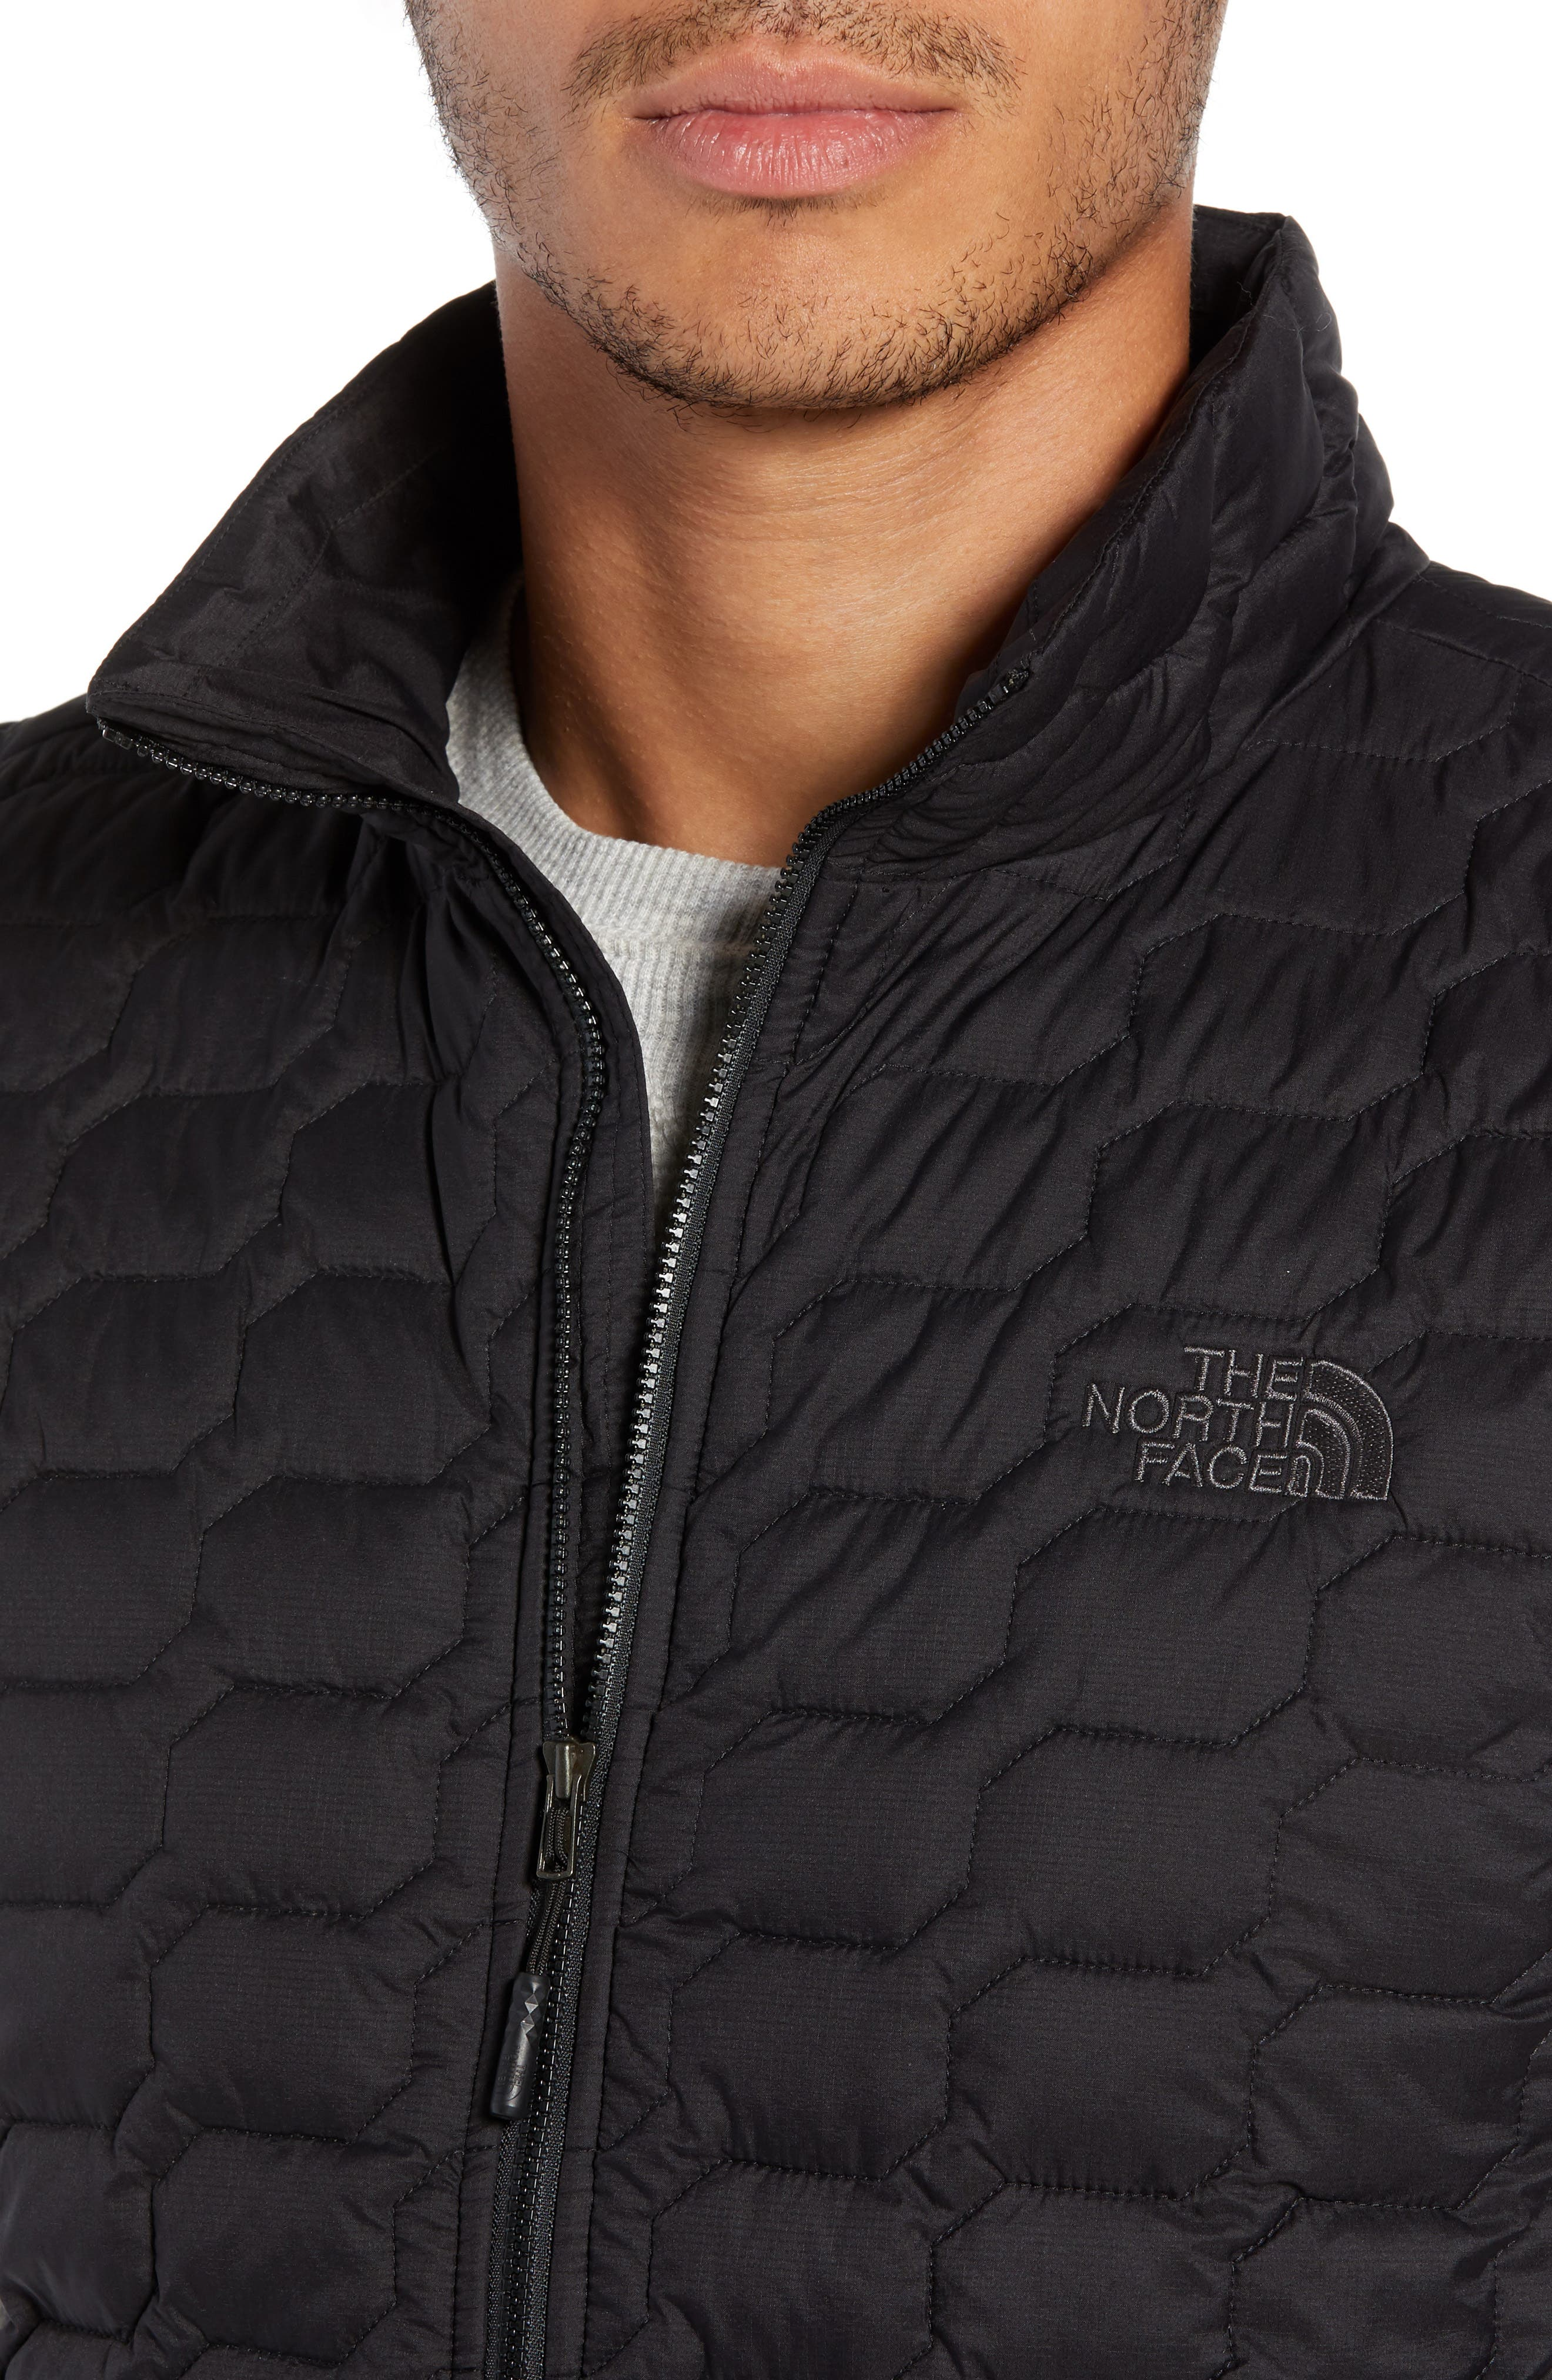 THE NORTH FACE, Thermoball<sup>®</sup> PrimaLoft<sup>®</sup> Vest, Alternate thumbnail 5, color, TNF BLACK MATTE